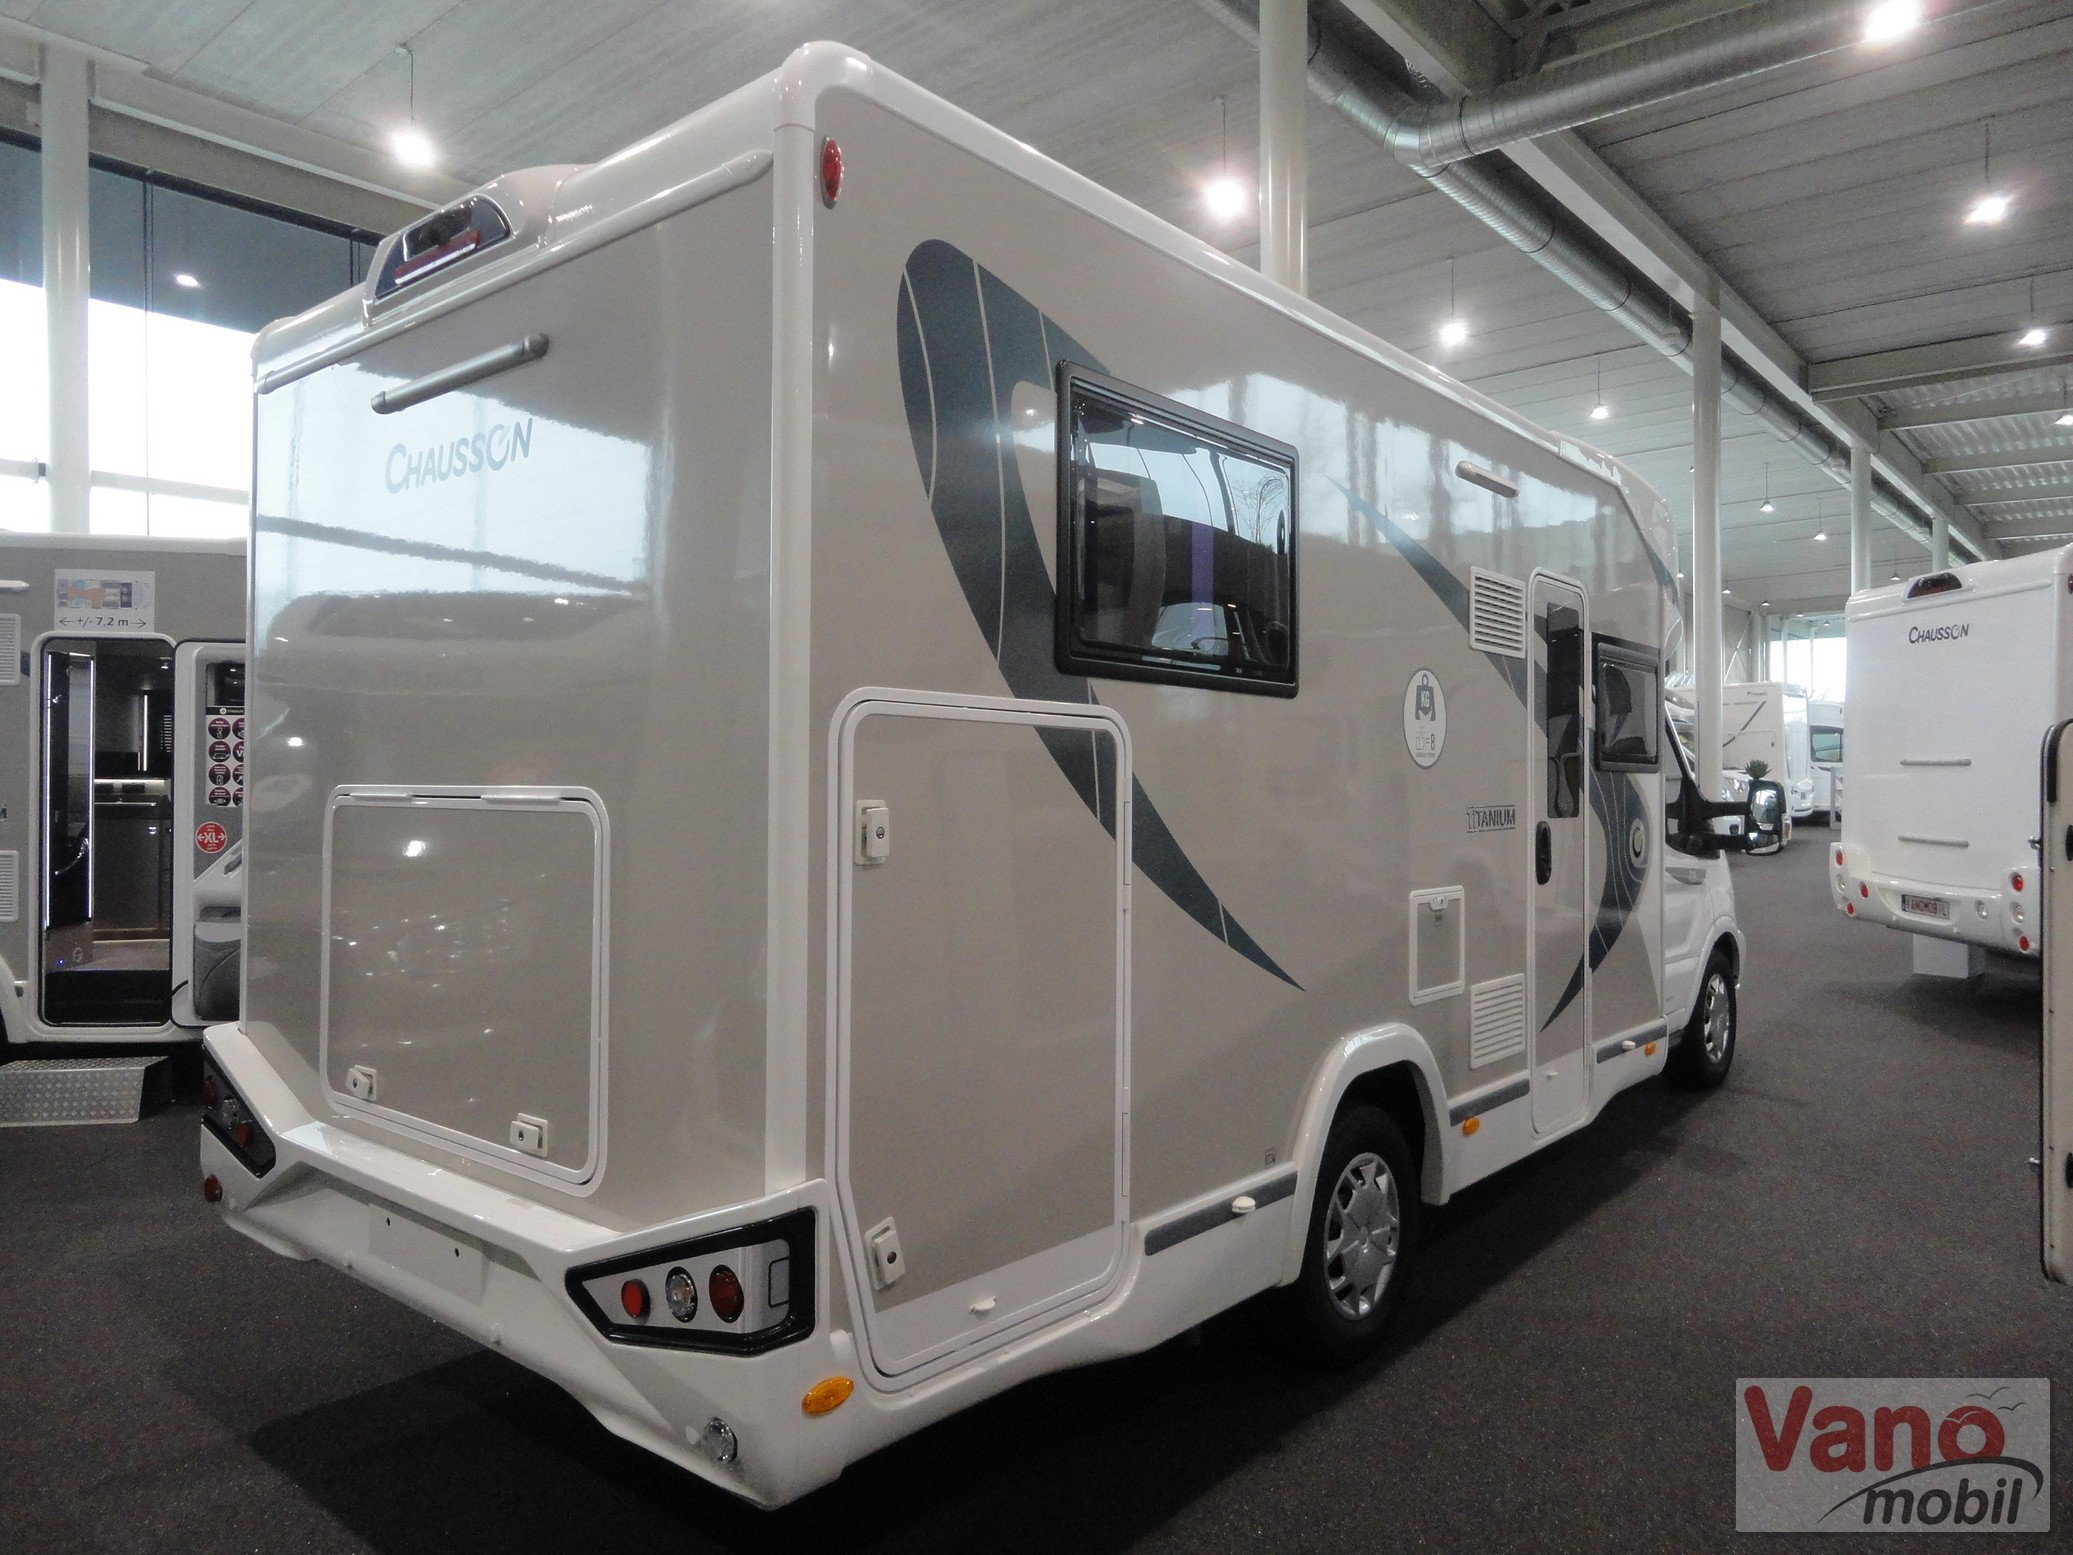 Chausson - Titanium 708 Ford 170 Automatic - 2